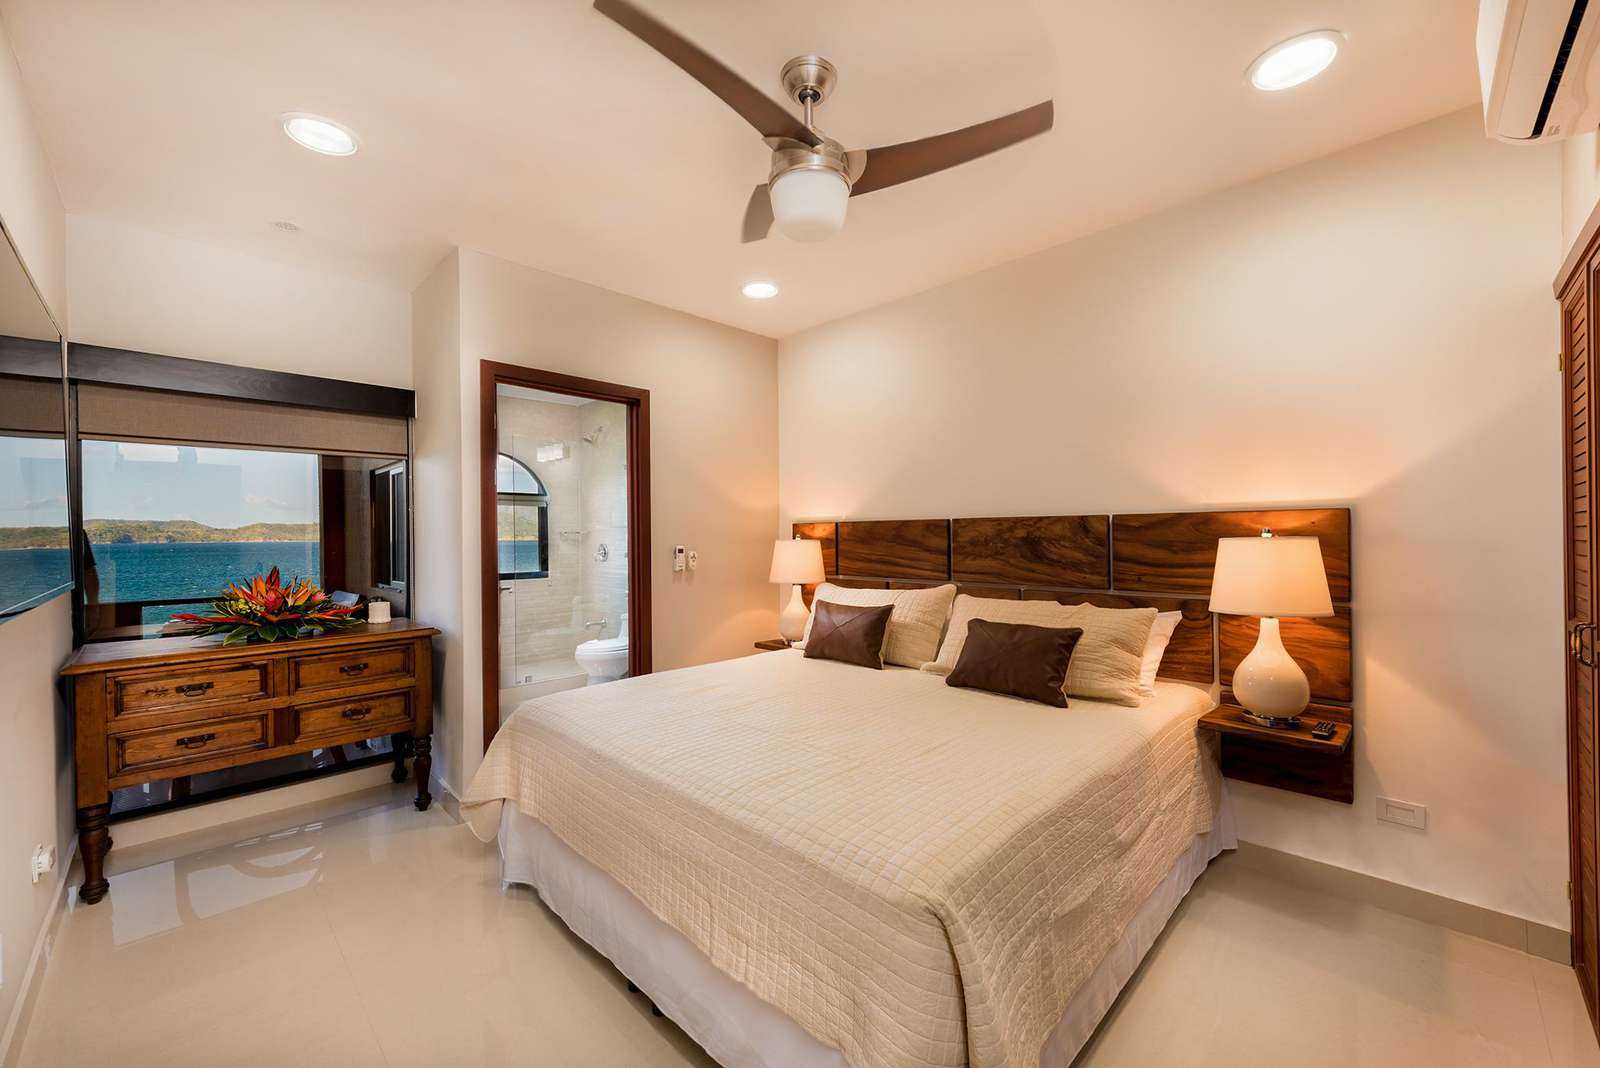 Master bedroom, king bed, private bath with ocean views